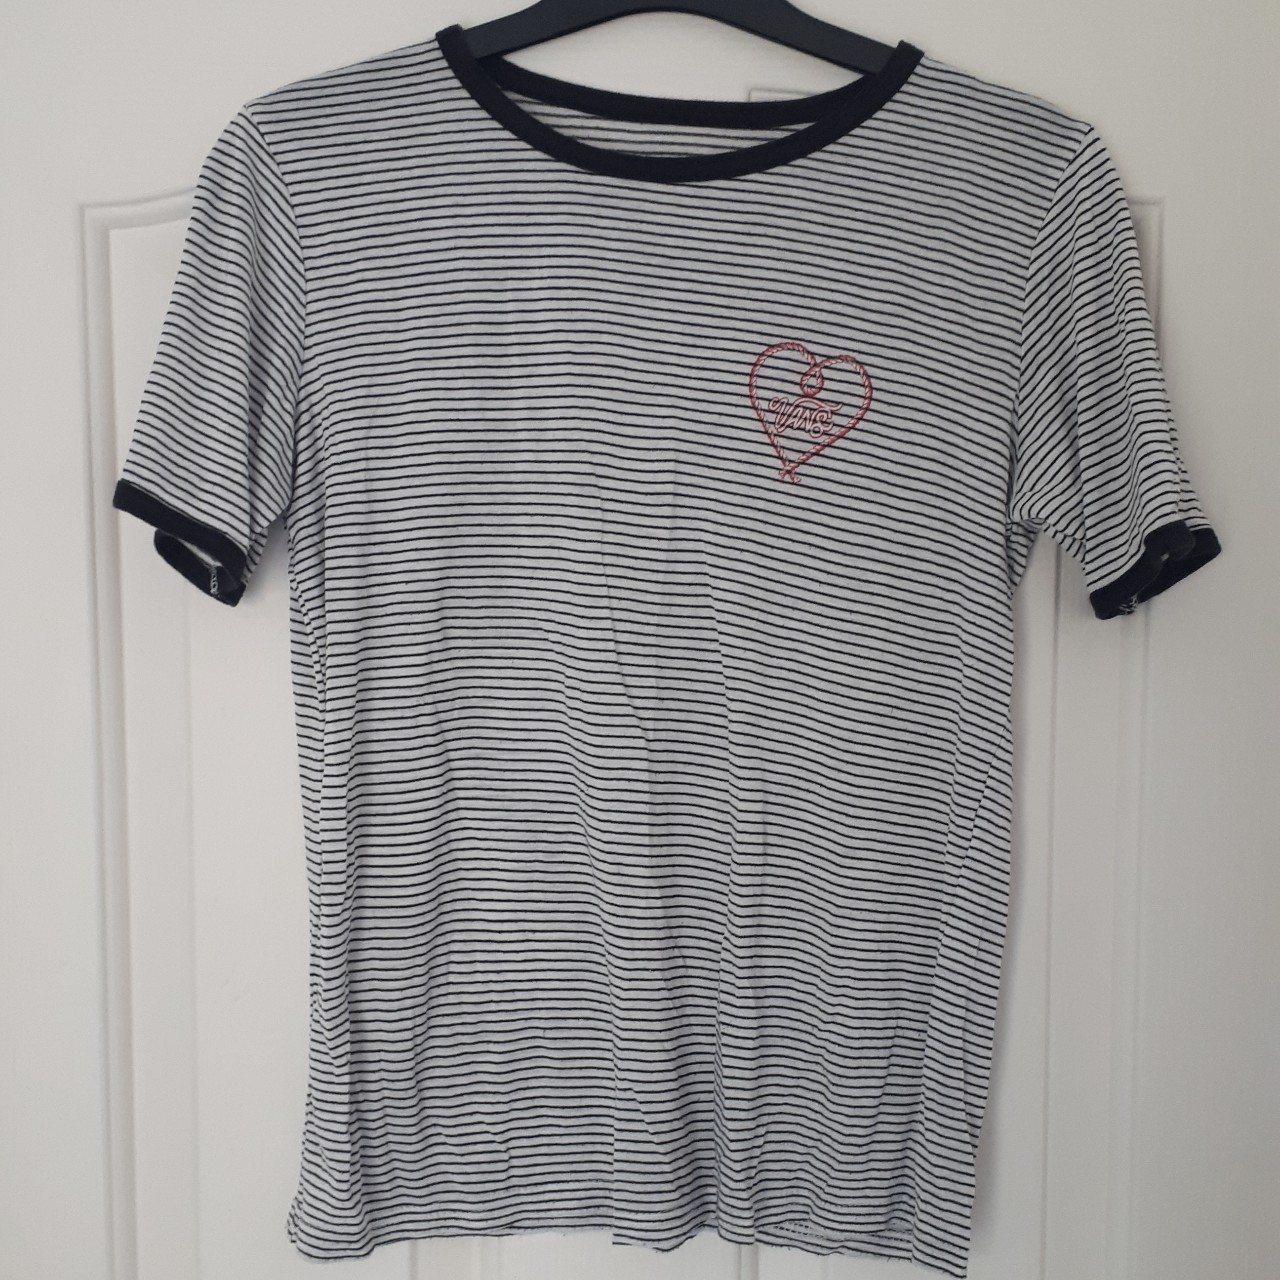 Vans T shirt black and white stripe with pink logo. Depop